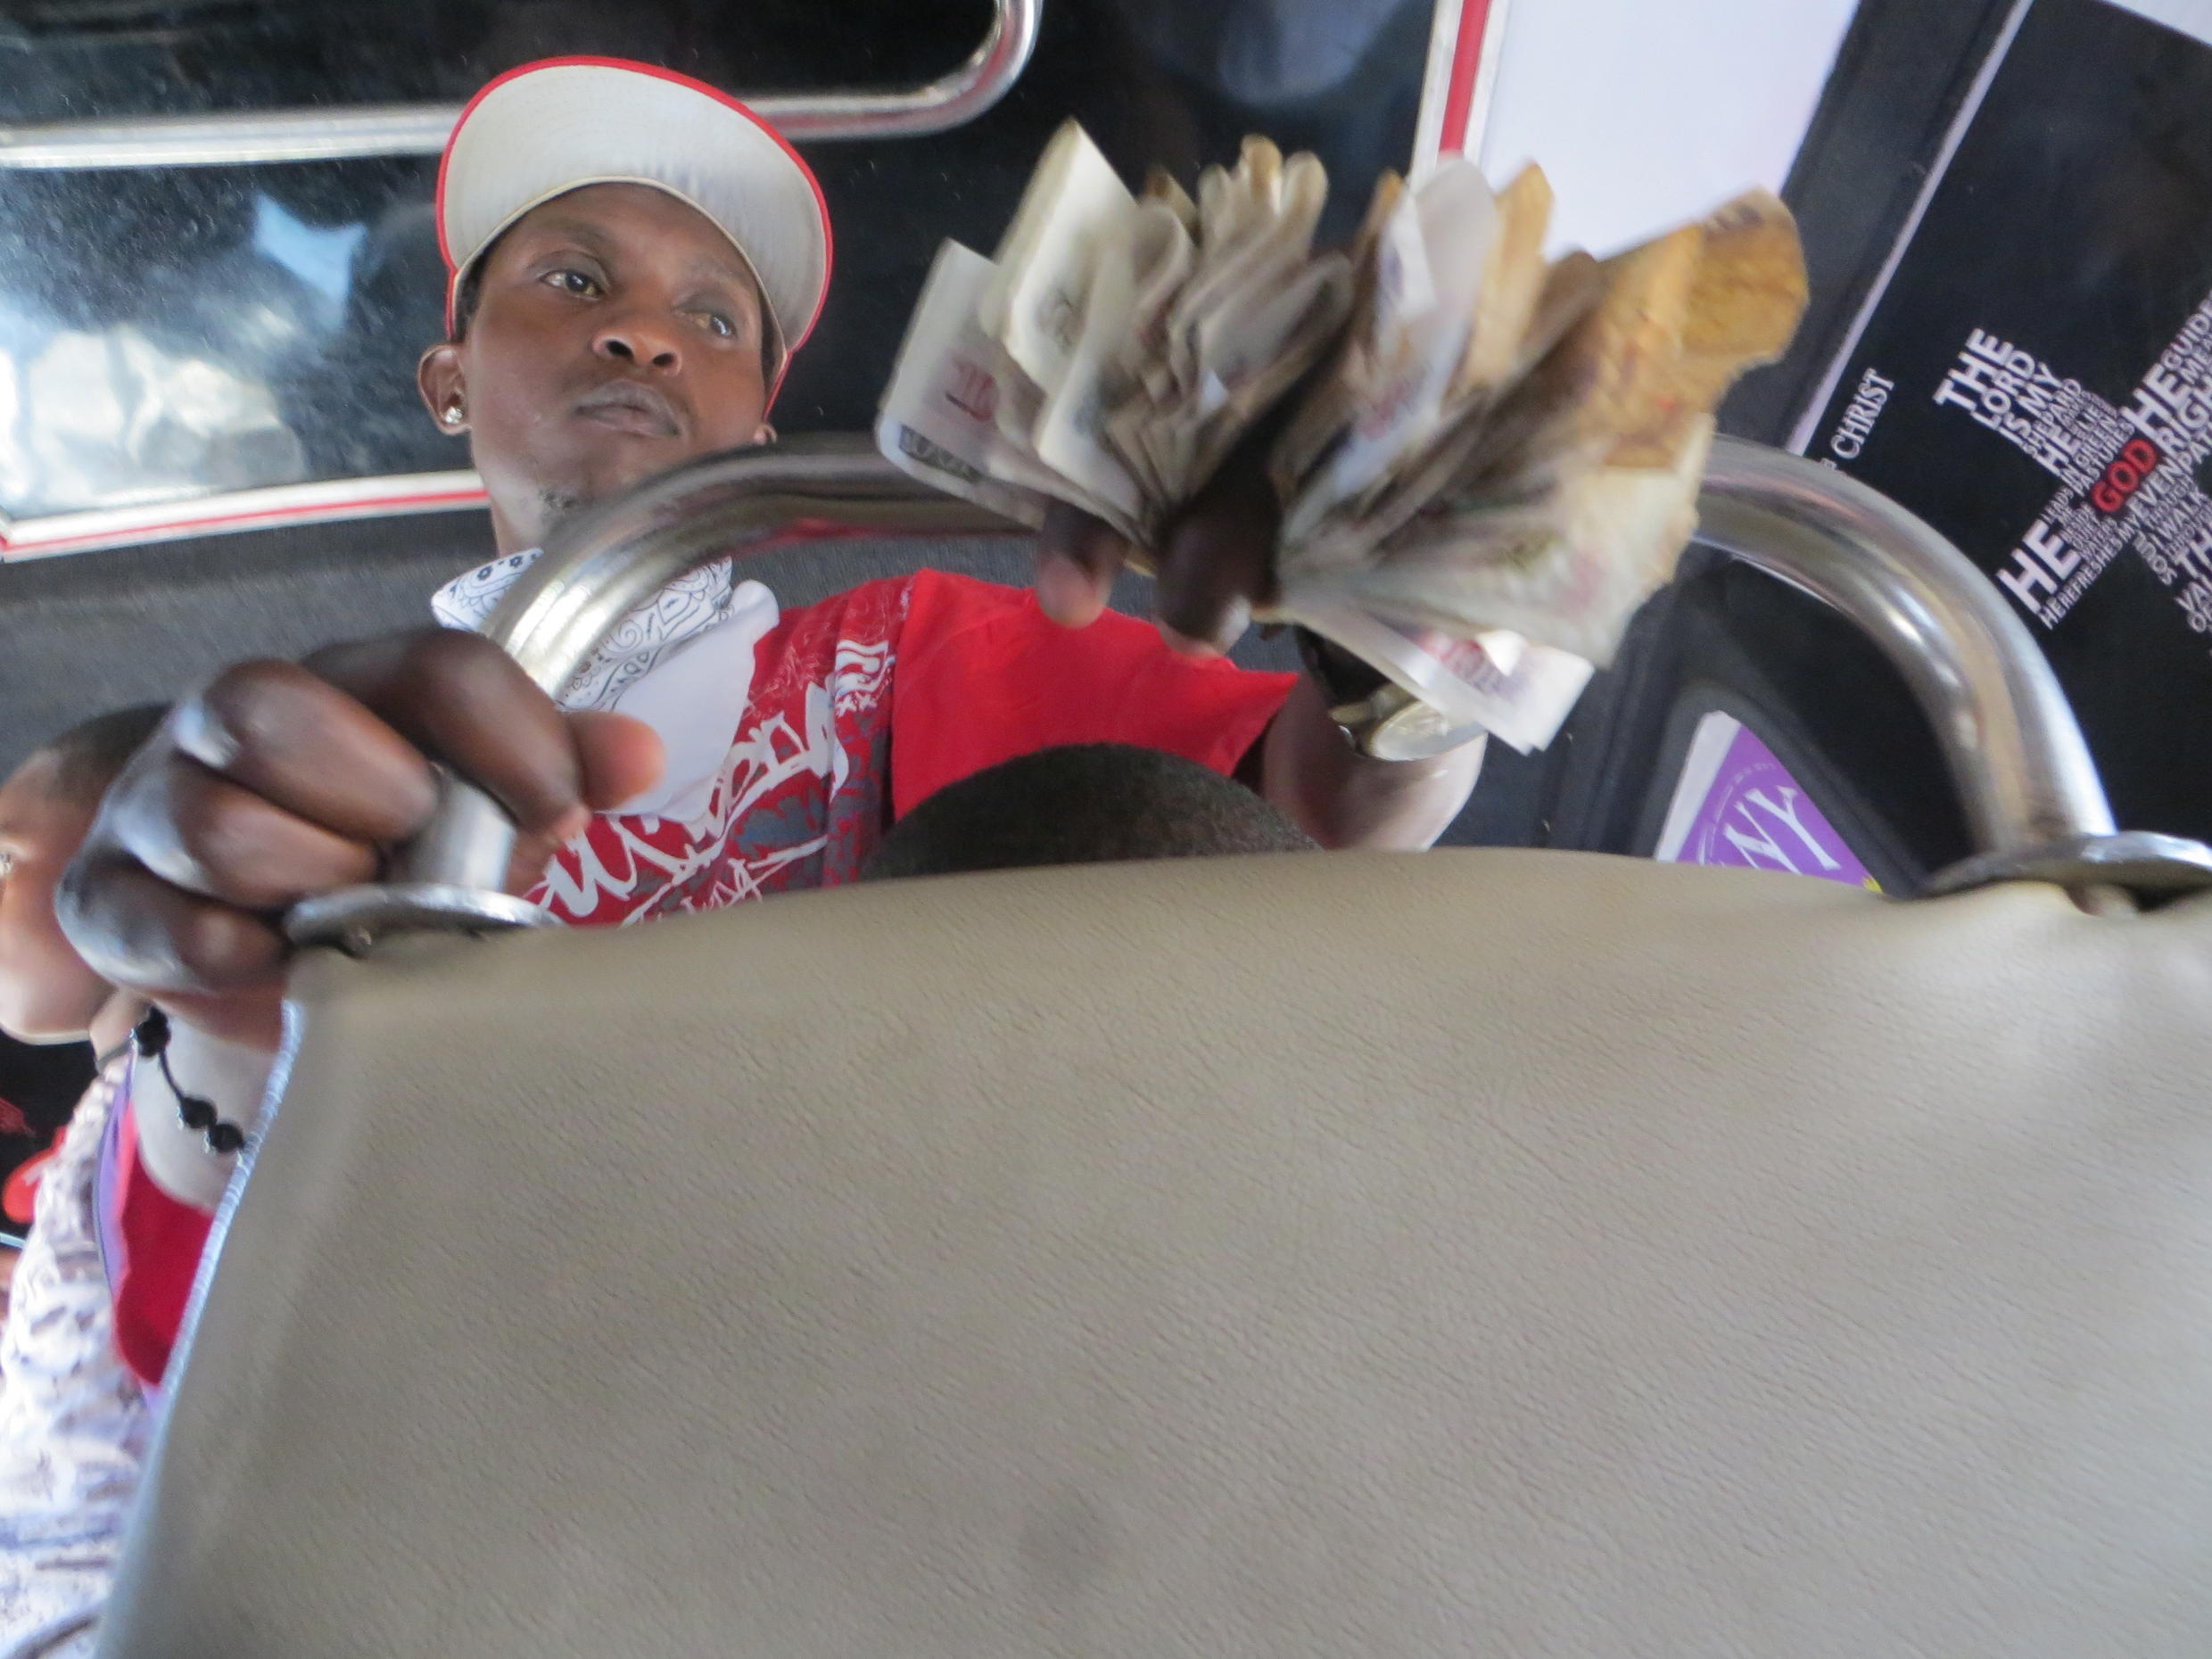 A makanga collects money from passengers on one of Nairobi's matatus. Many of those working in Kenya's matatu industry are skeptical about switching from cash to an electrionic card.